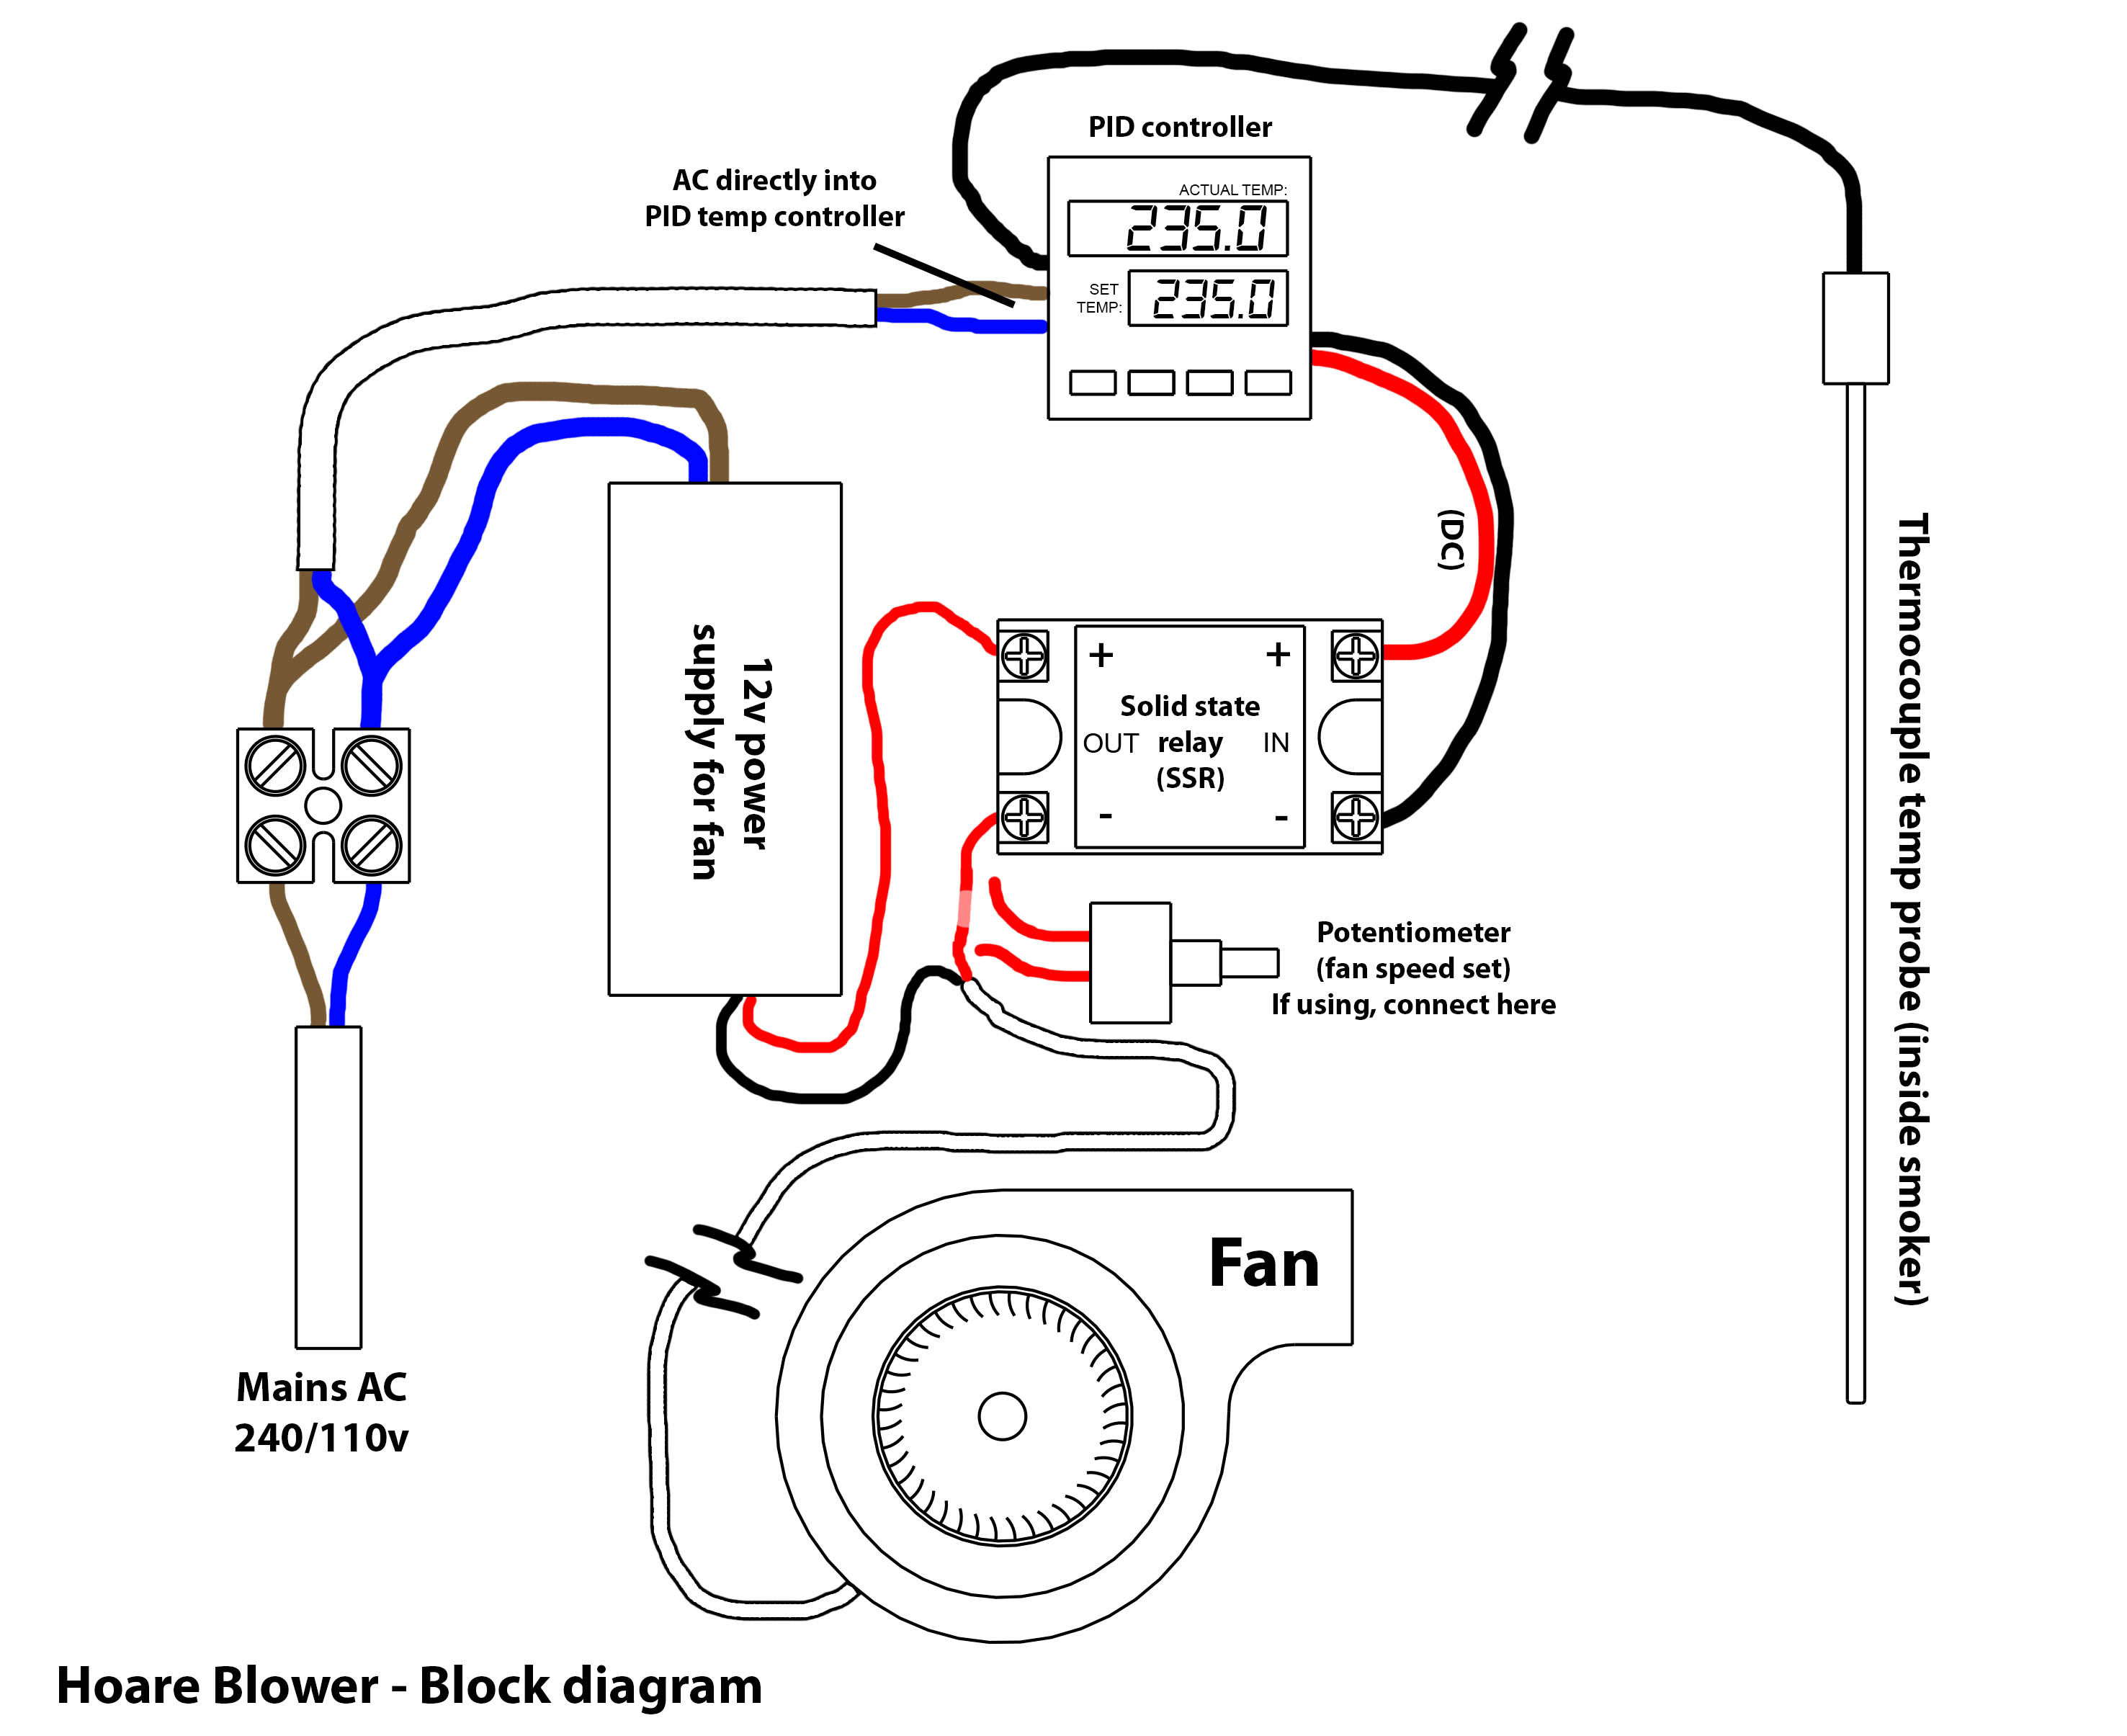 BuildingBlowerDoor together with 14l29 1996 Honda Accord 2 2l The Diagram Is Wire Colors Wires Going moreover 21757 Ecm Pgm Fi Relay Location in addition Build Digital Forced Draft Smoker Controller as well Iveco Turbo Daily Ii Mk2 1989 1999 Fuse Box Diagram. on fan relay wiring diagram